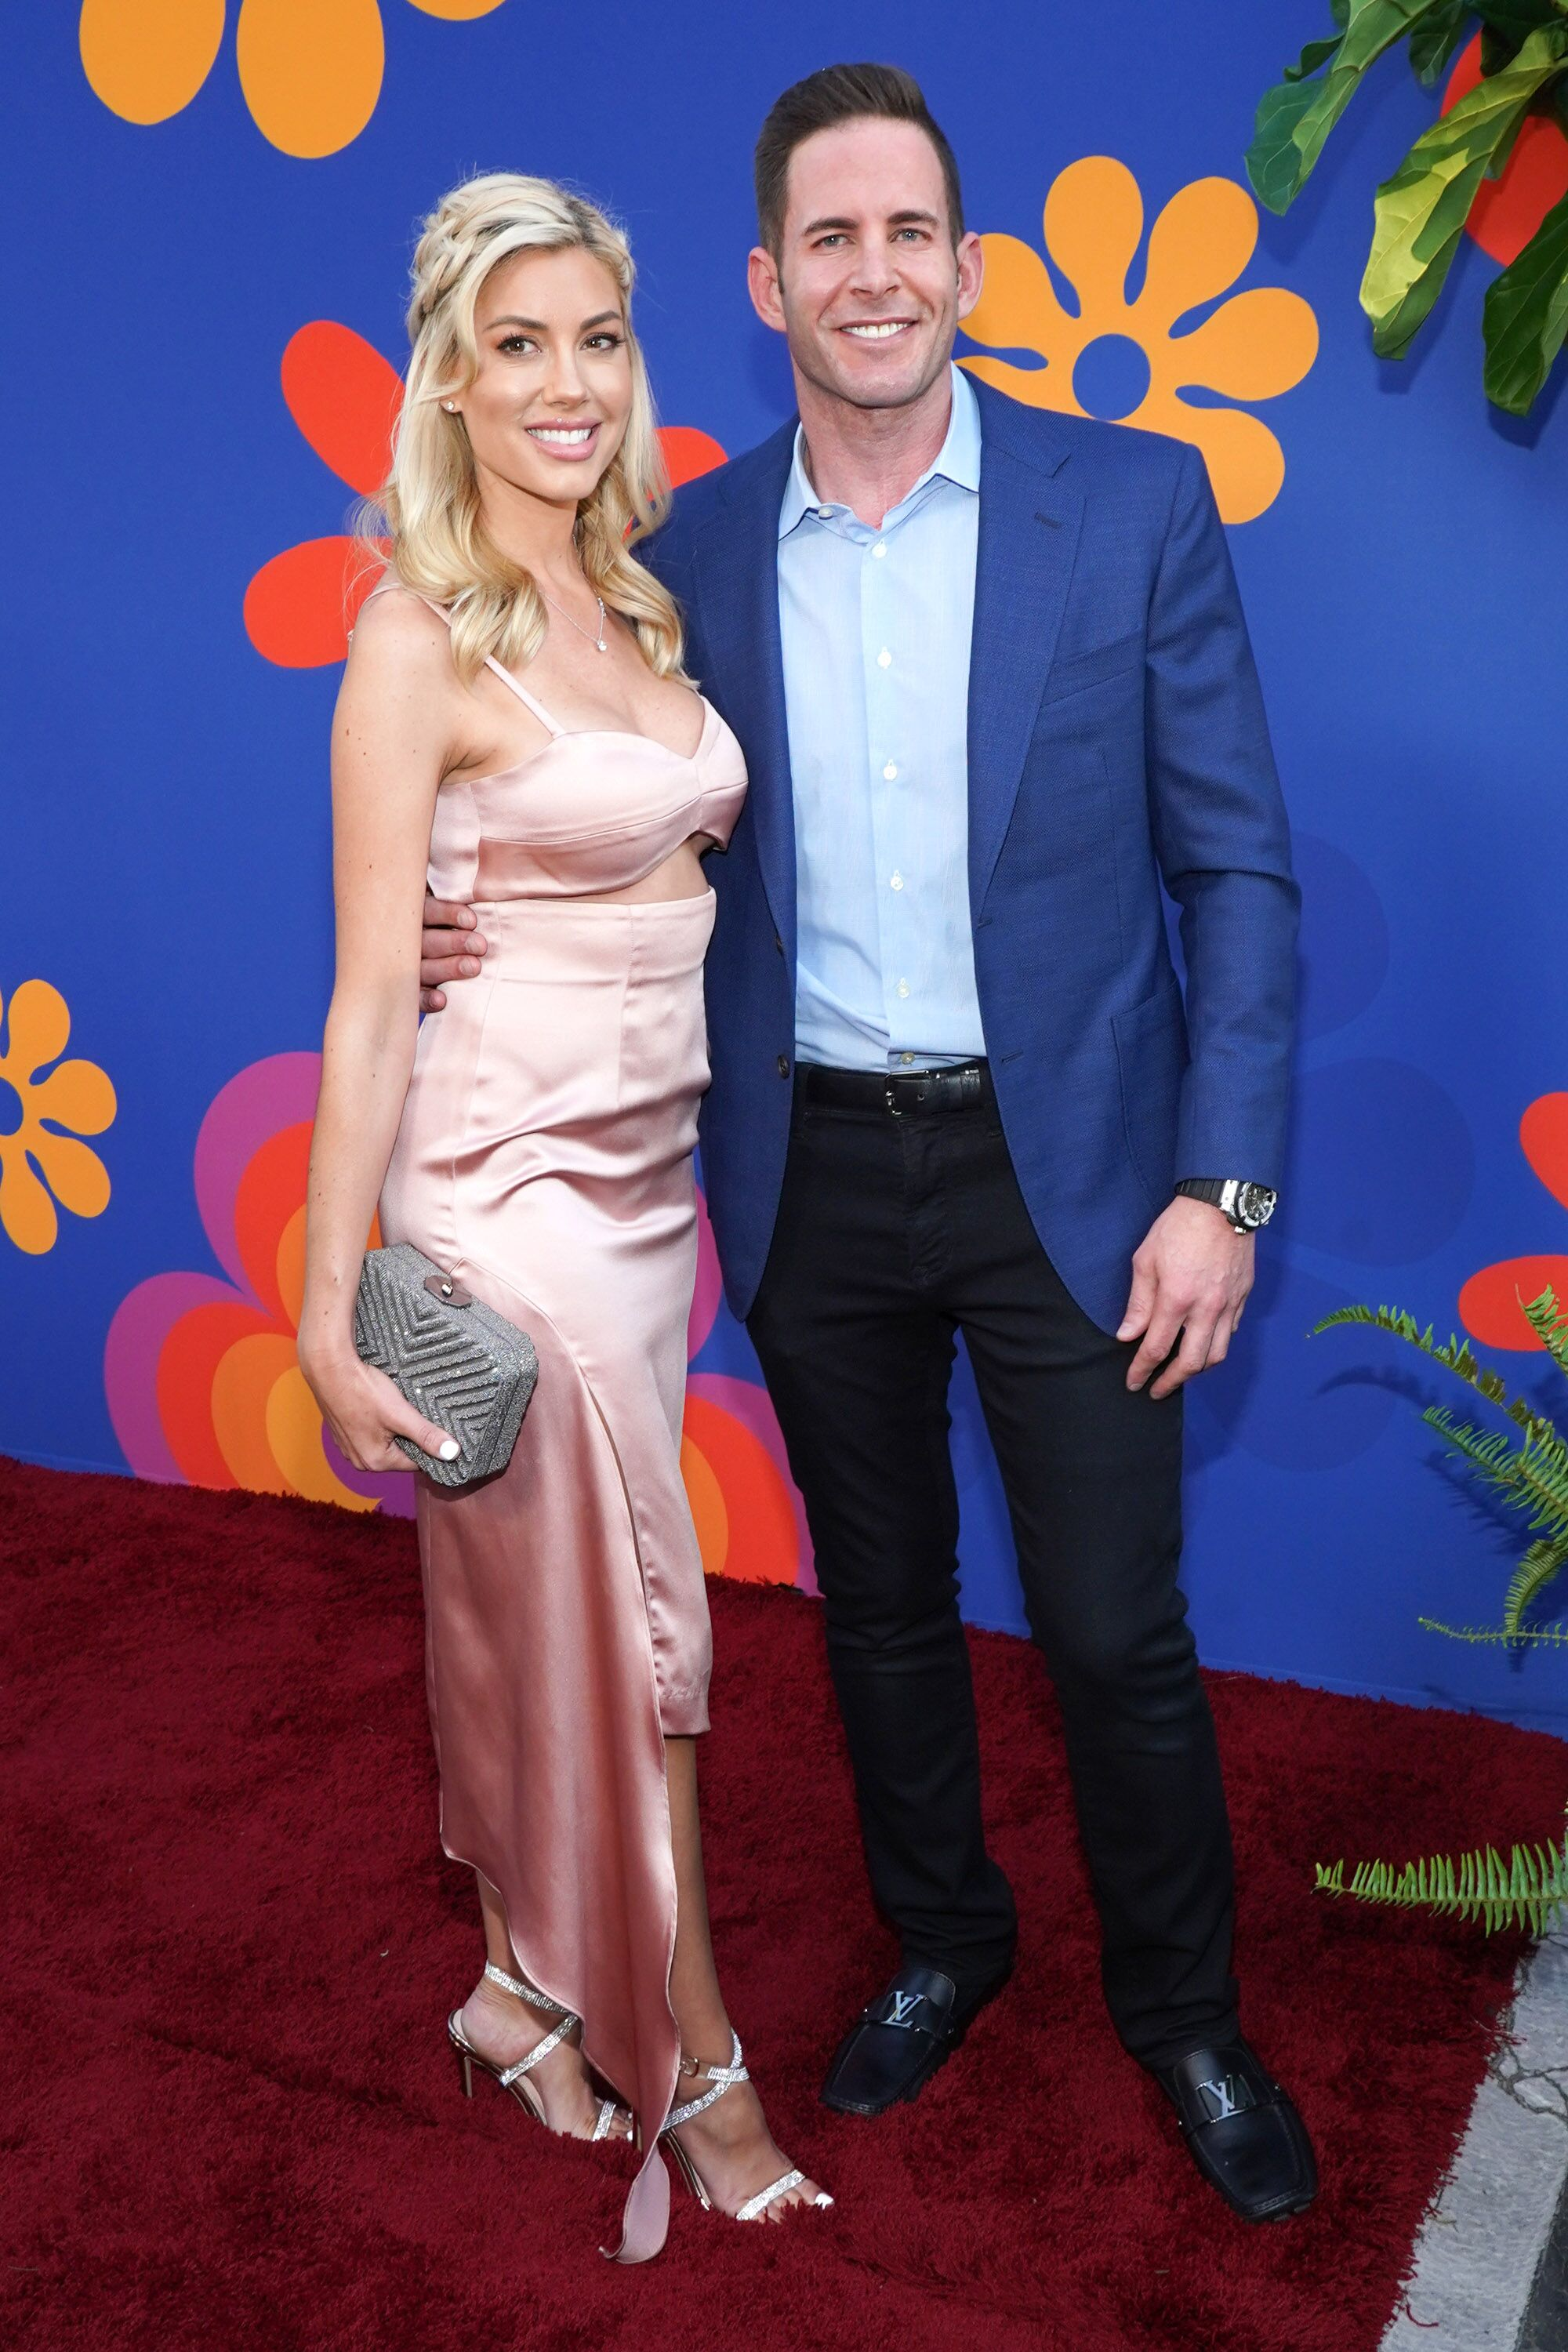 Tarek El Moussa and Heather Rae Young at the premiere of HGTV's A Very Brady Renovation on September 05, 2019, in North Hollywood, California | Photo: Rachel Luna/Getty Images